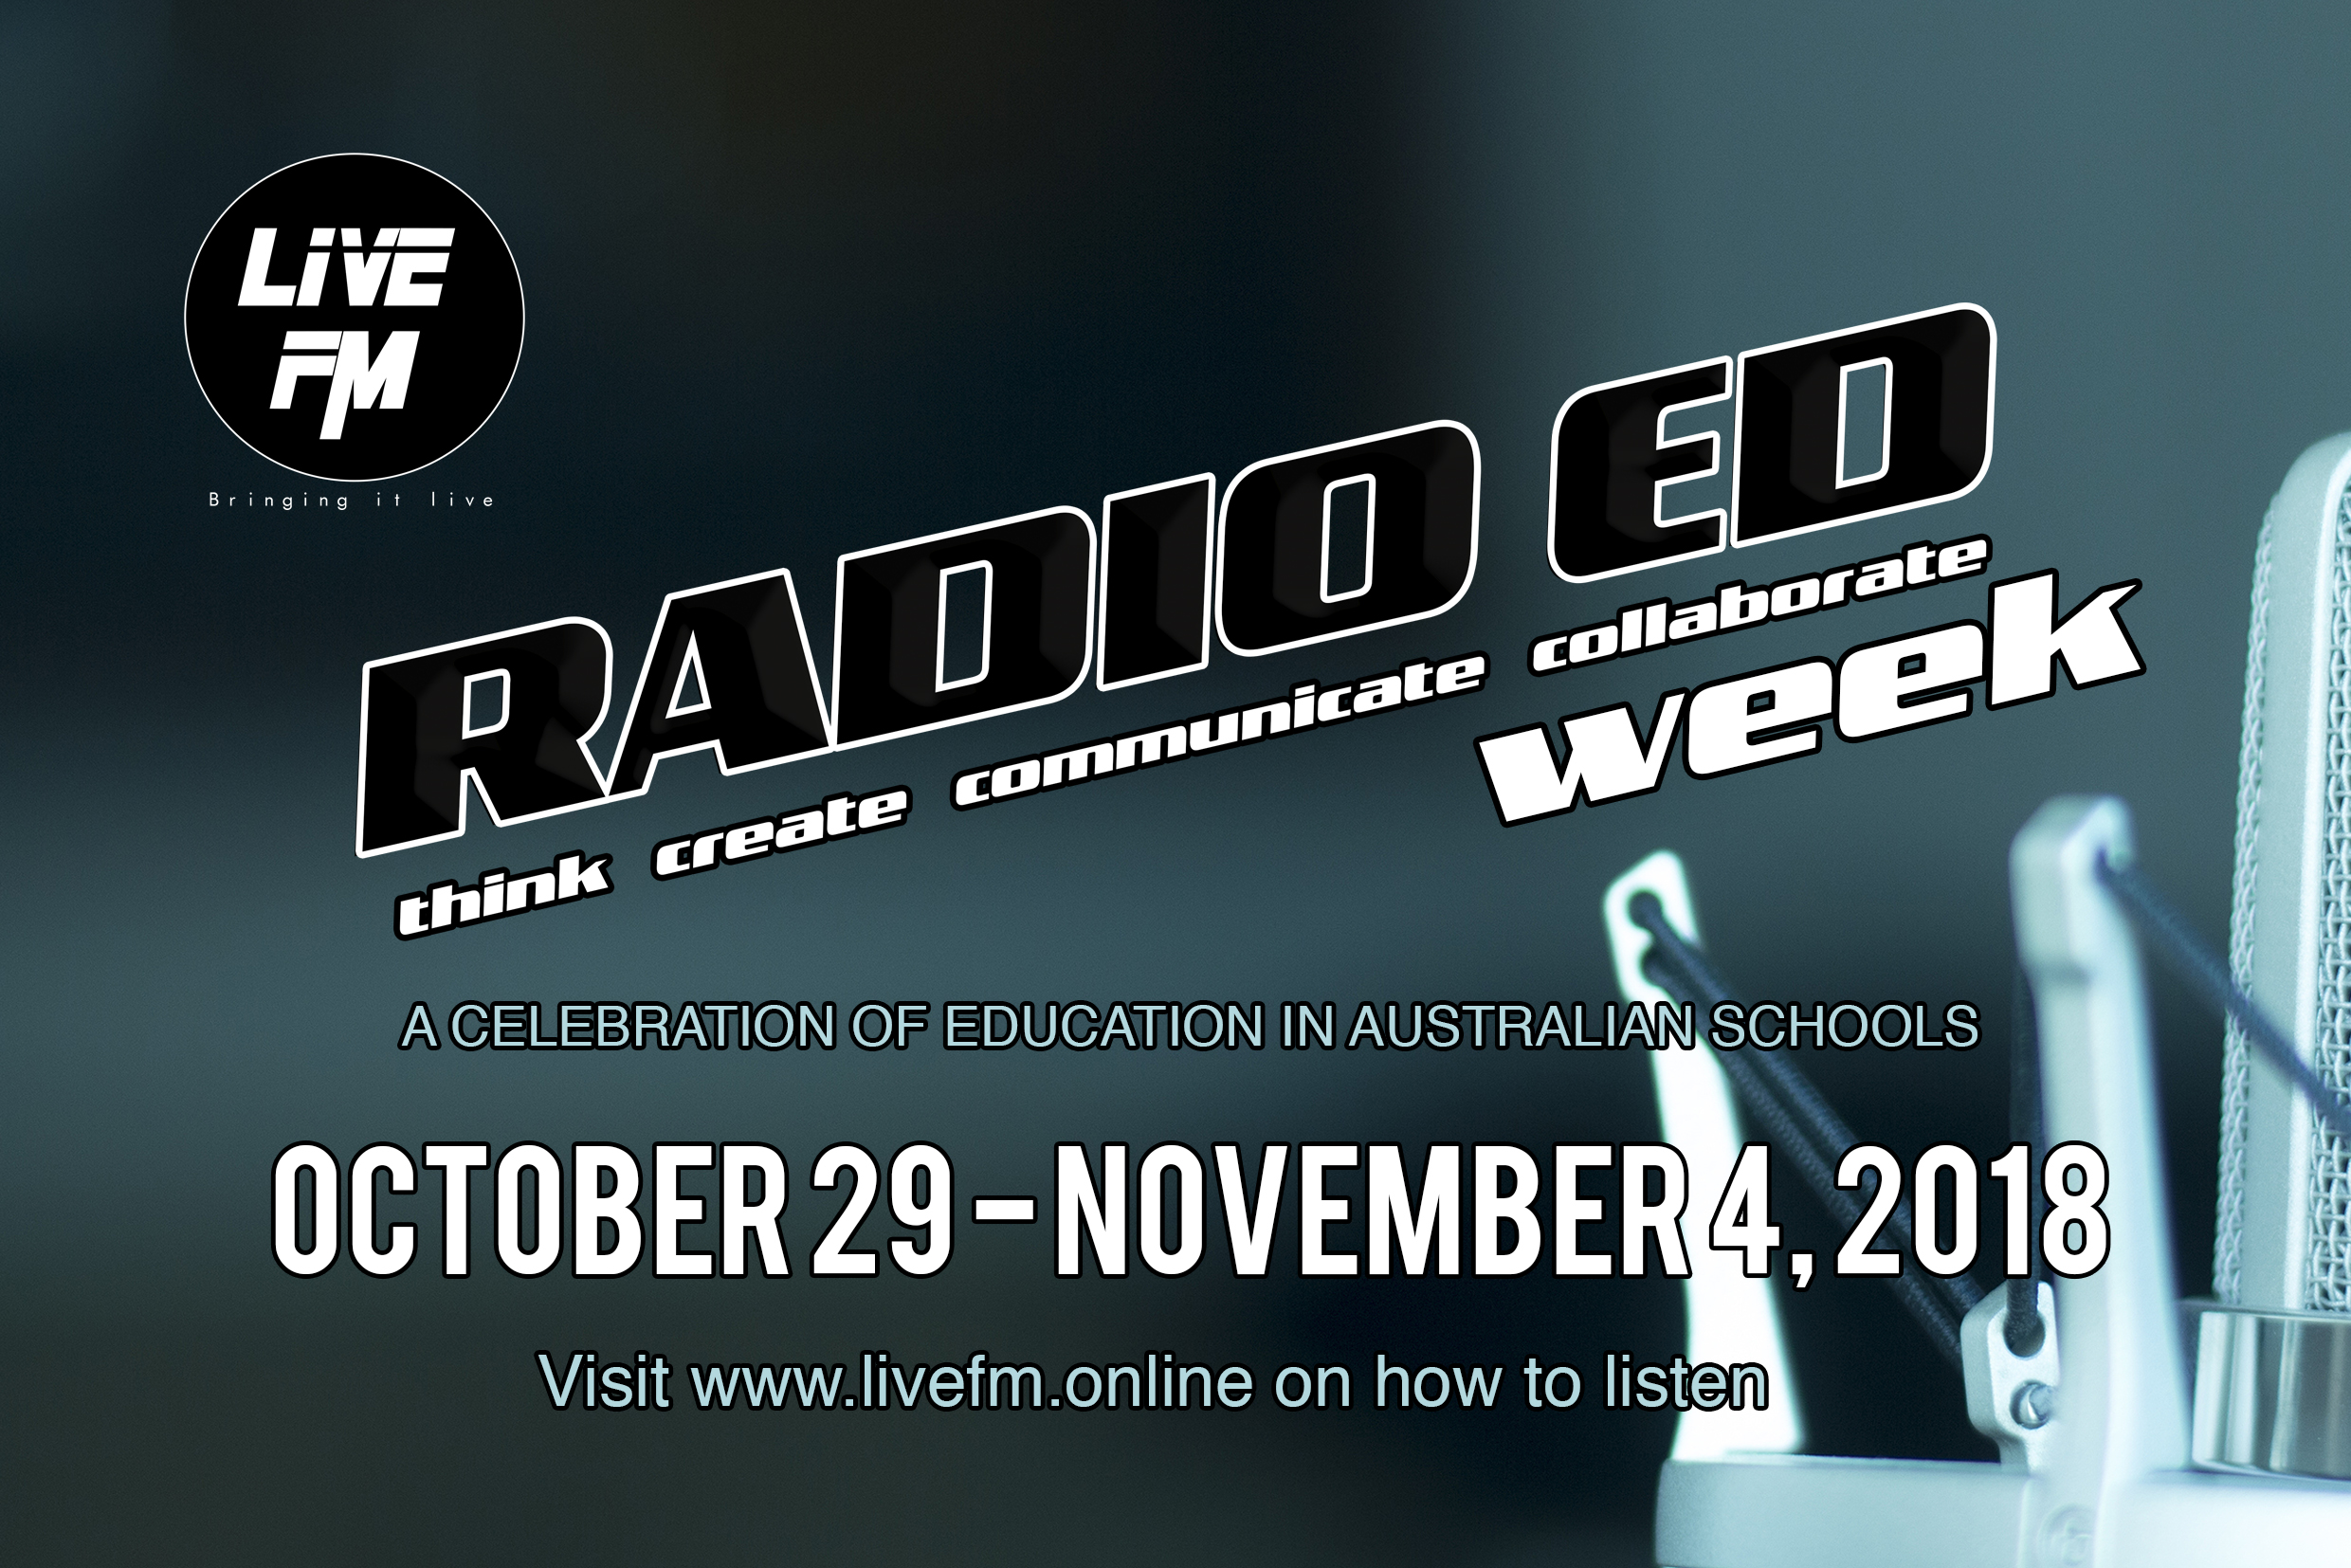 RADIO ED week promo - Linkedin V2.jpg